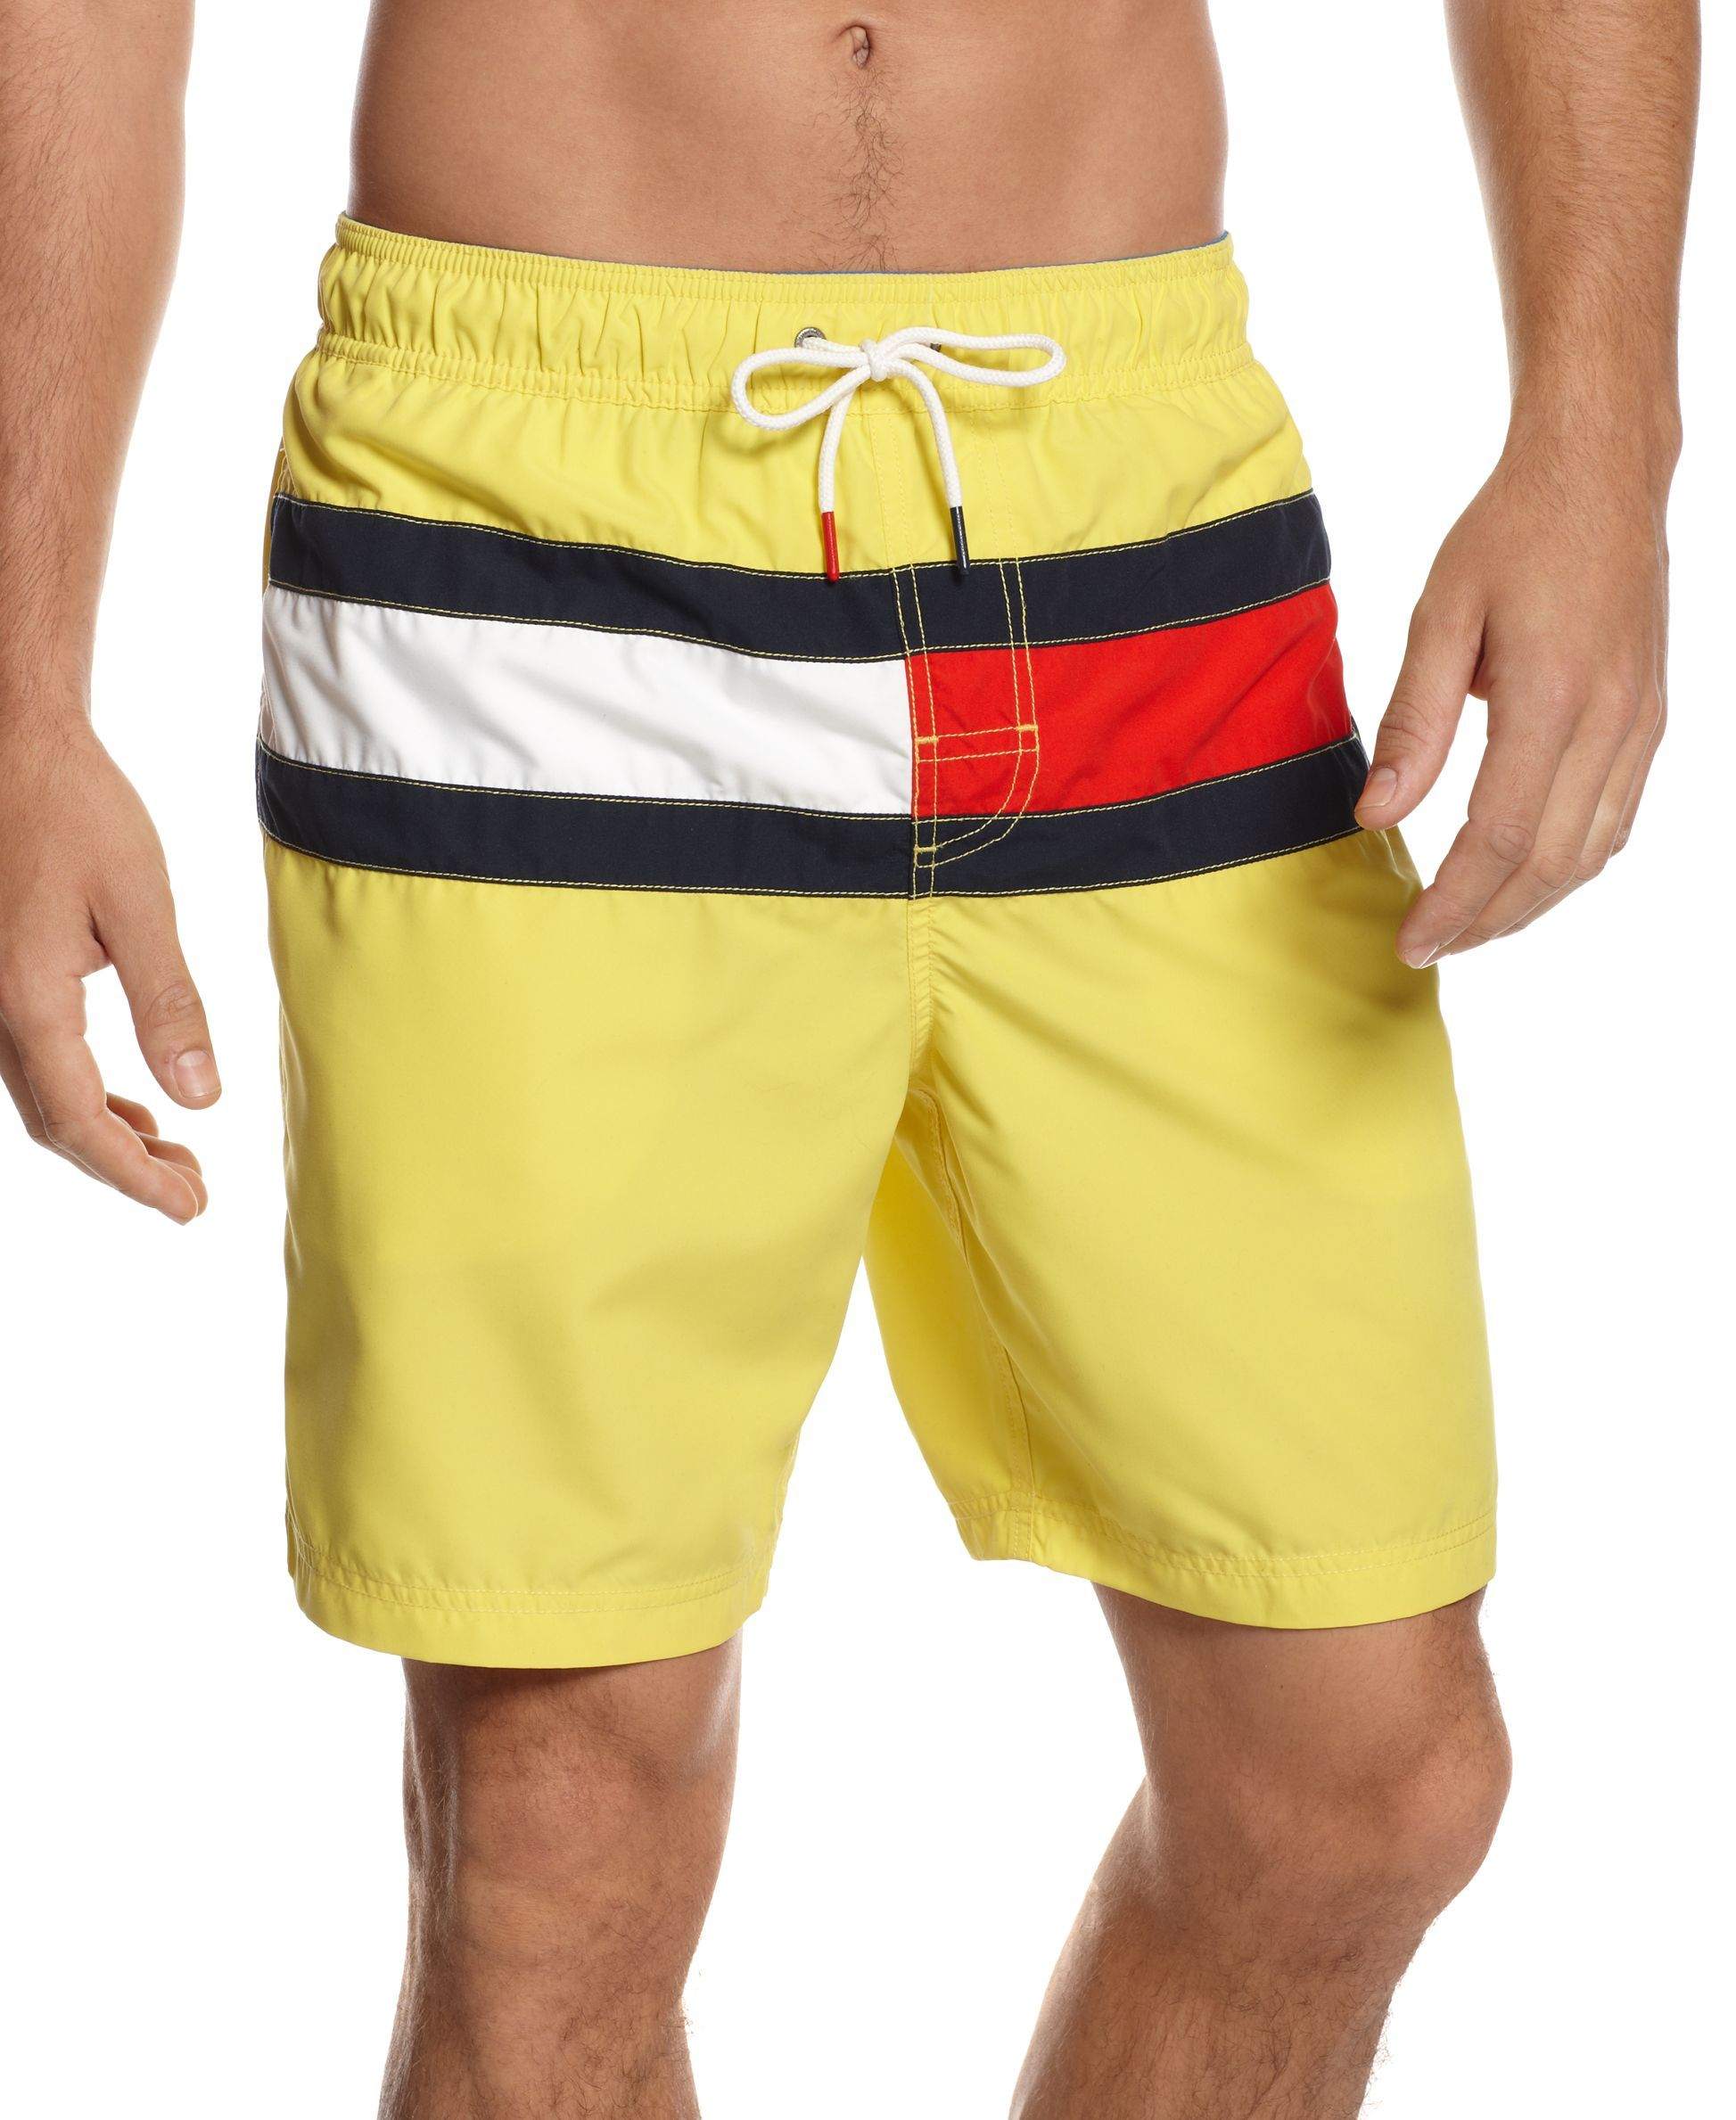 4f7b683d Tommy Hilfiger Flag It Swim Trunks | Cool stuff 51 | Trunks swimwear ...